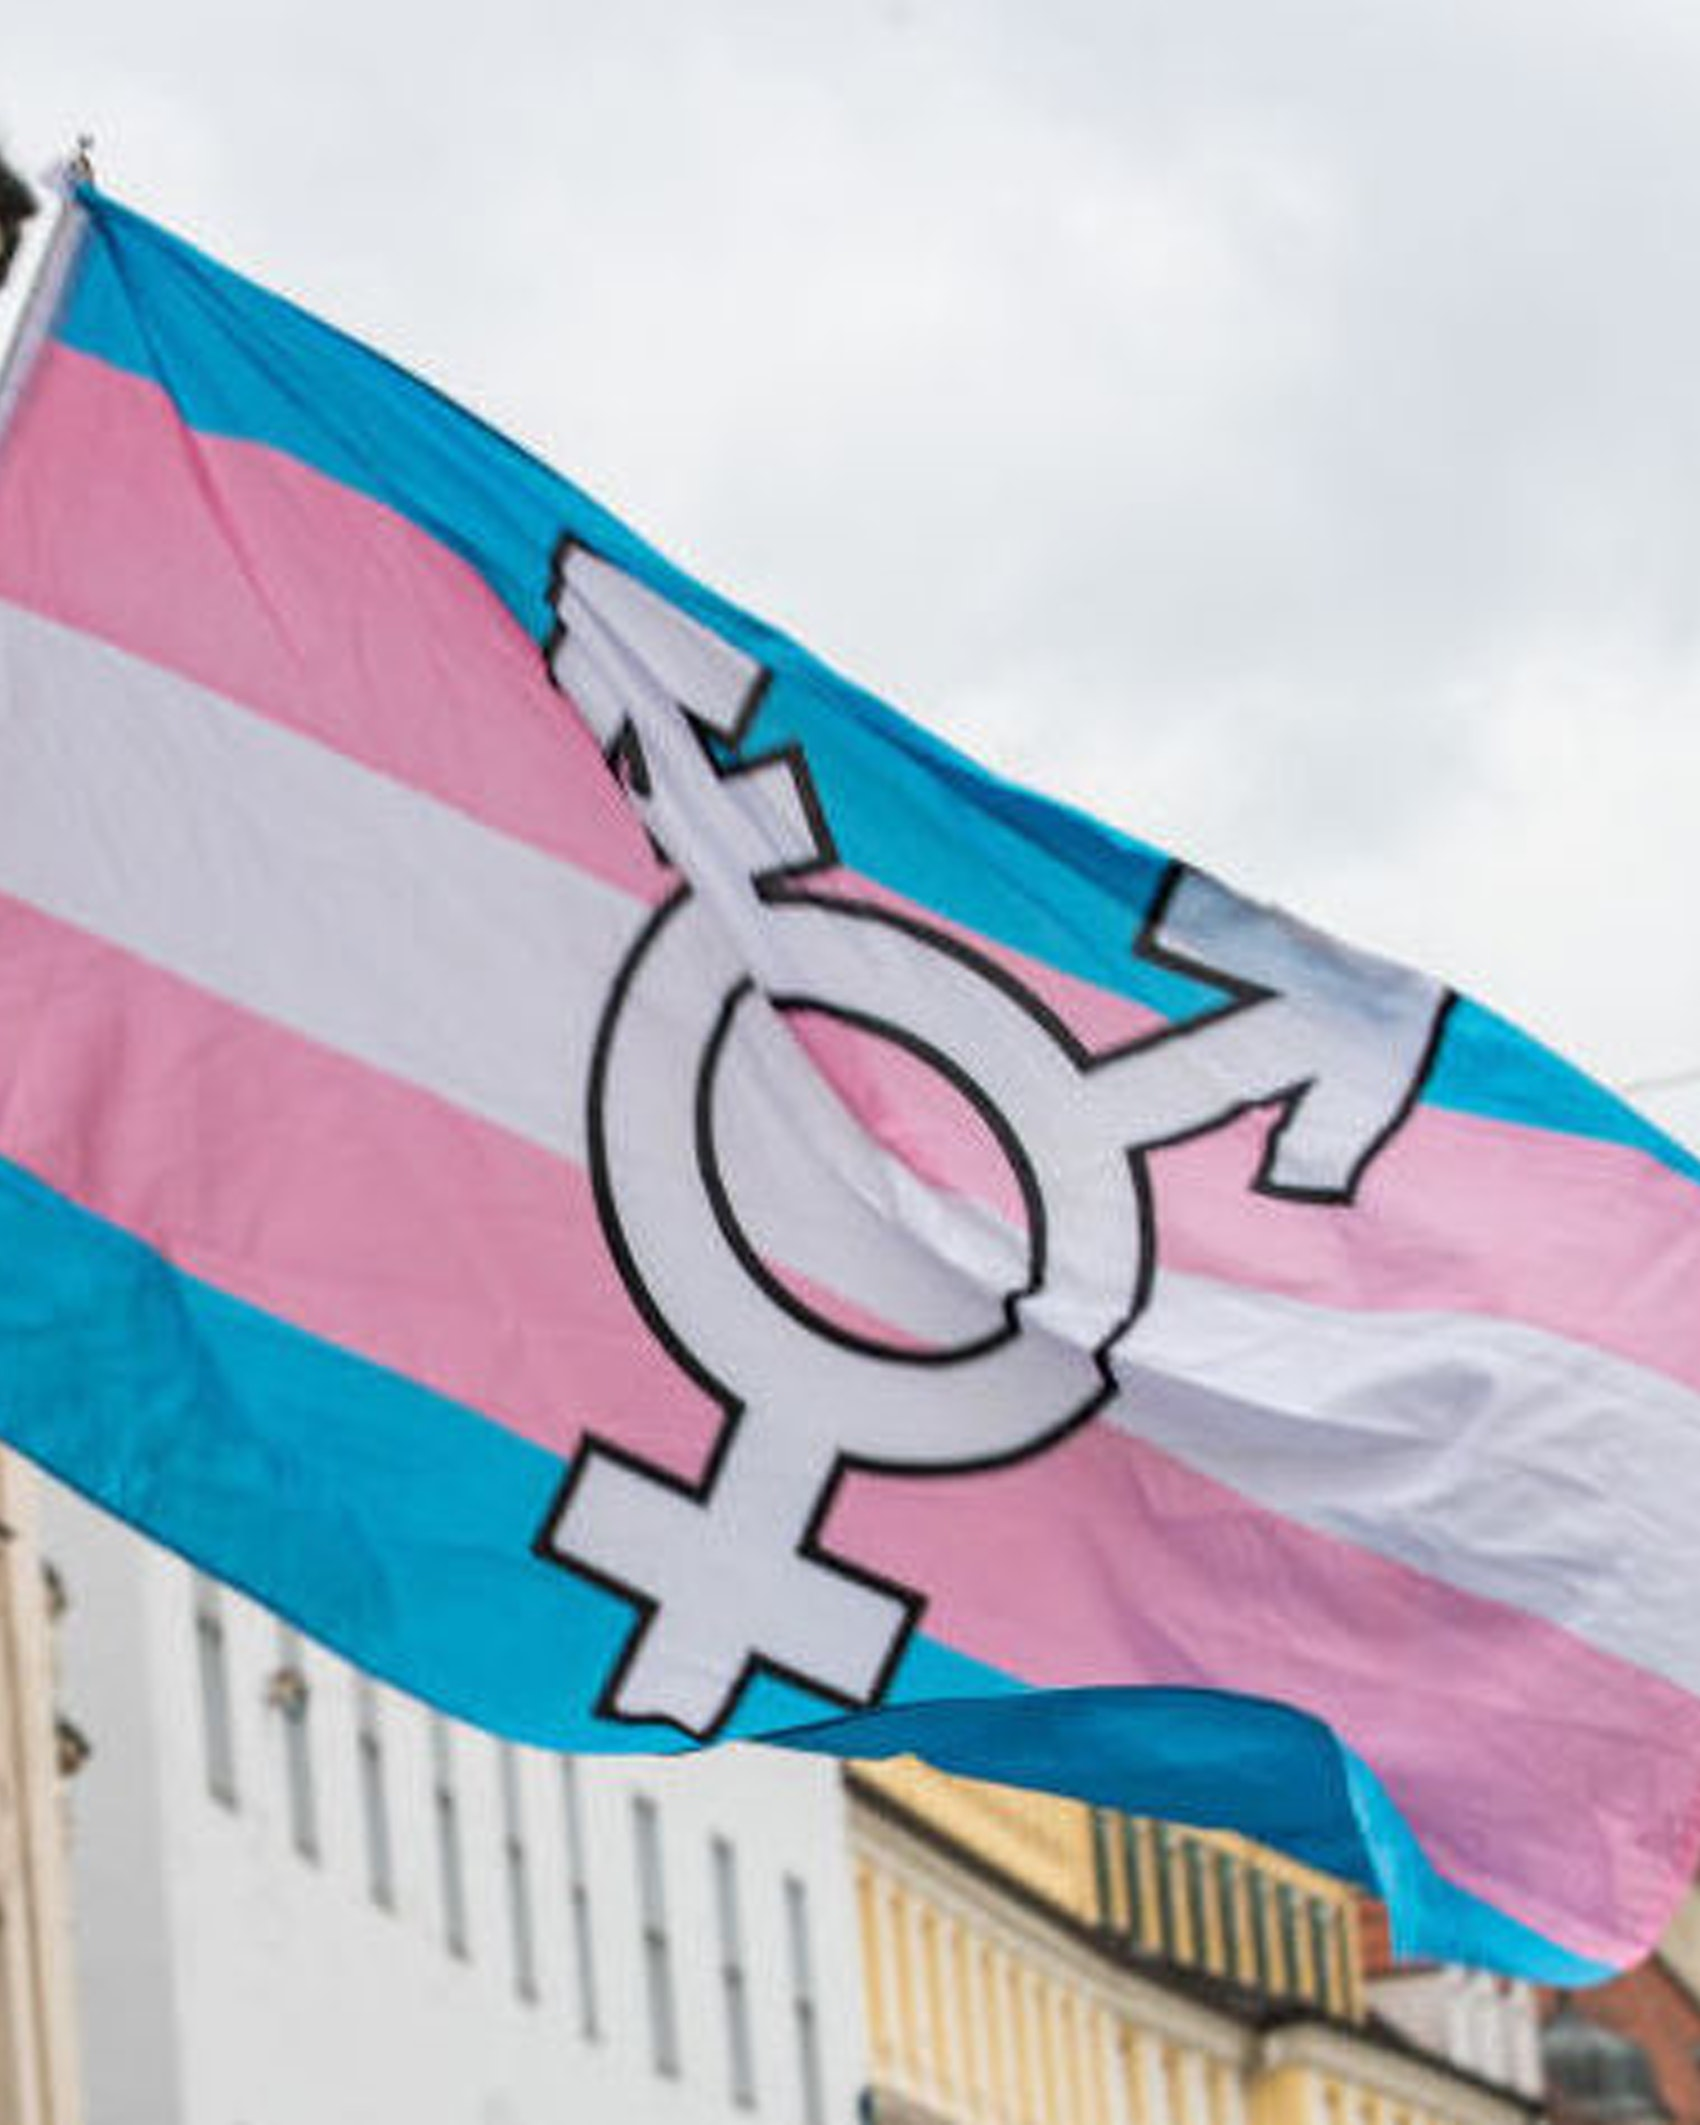 Trans Flag. On 13.7.2019 Hundreds of Thousands celebrated the Pride ( Christopher Street Day ) in Munich. Several LGBTQ Groups participated. (Photo by Alexander Pohl/NurPhoto)